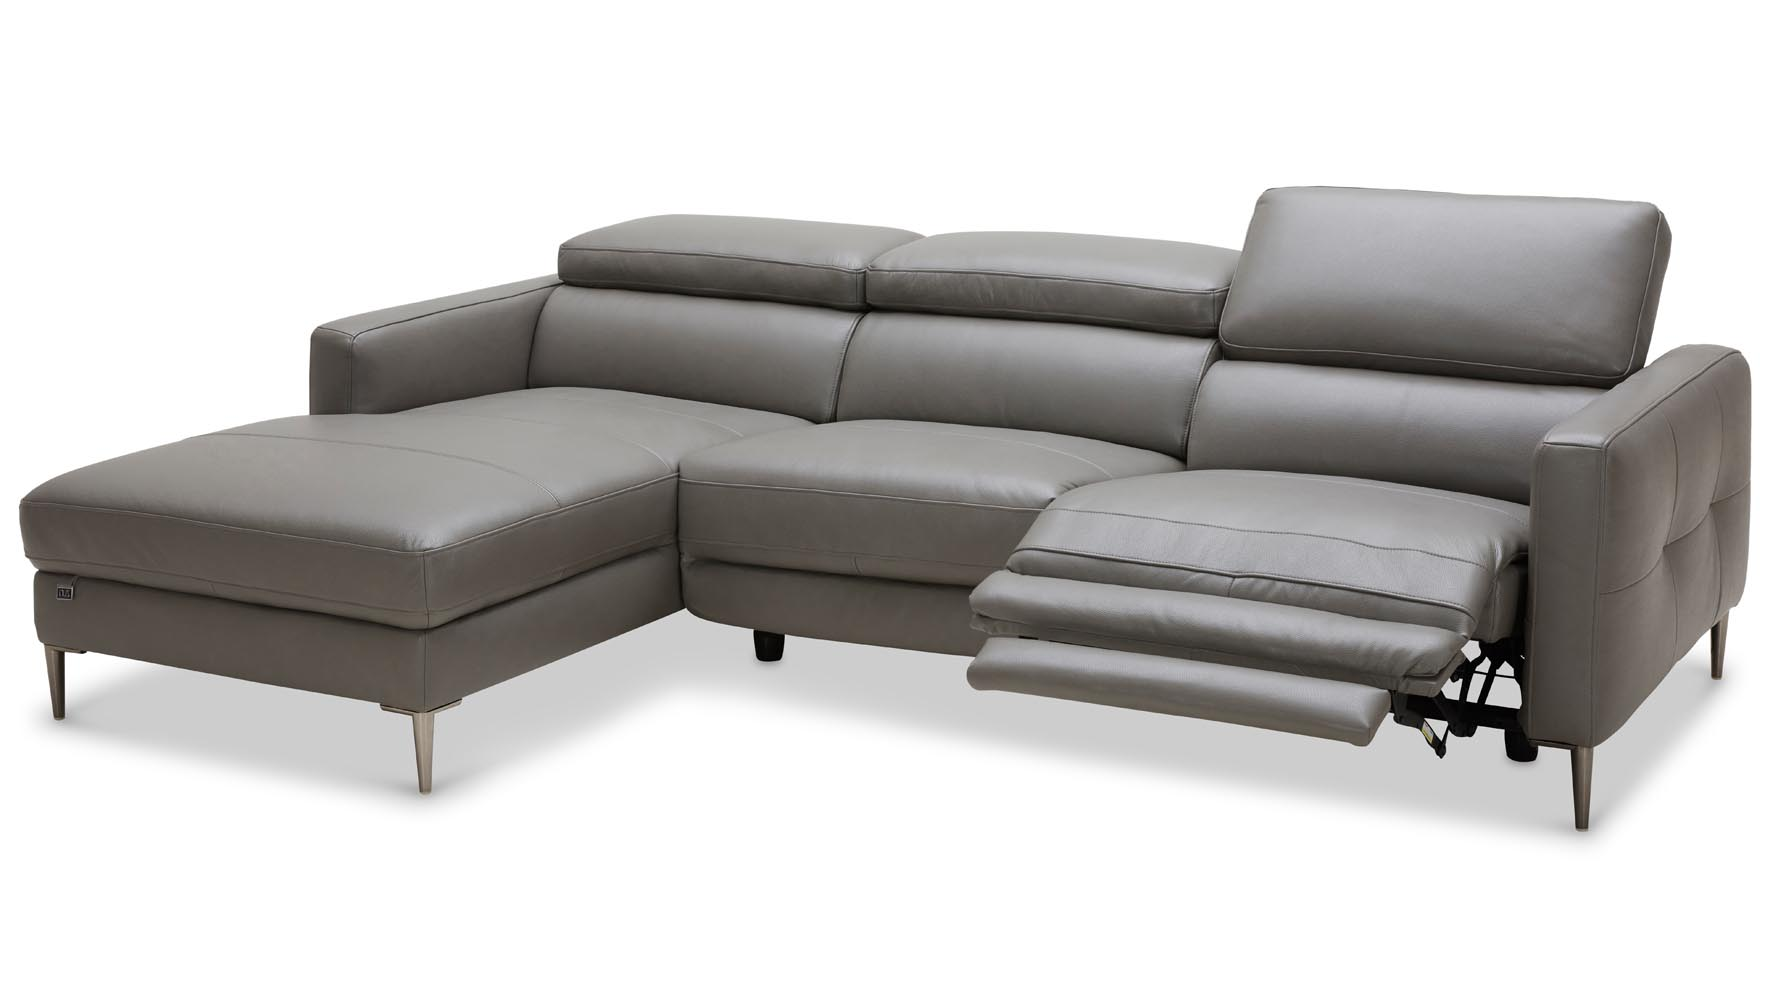 Leather Sofa With Chaise Modern Leather Sofa With Chaise Probably Fantastic Fun